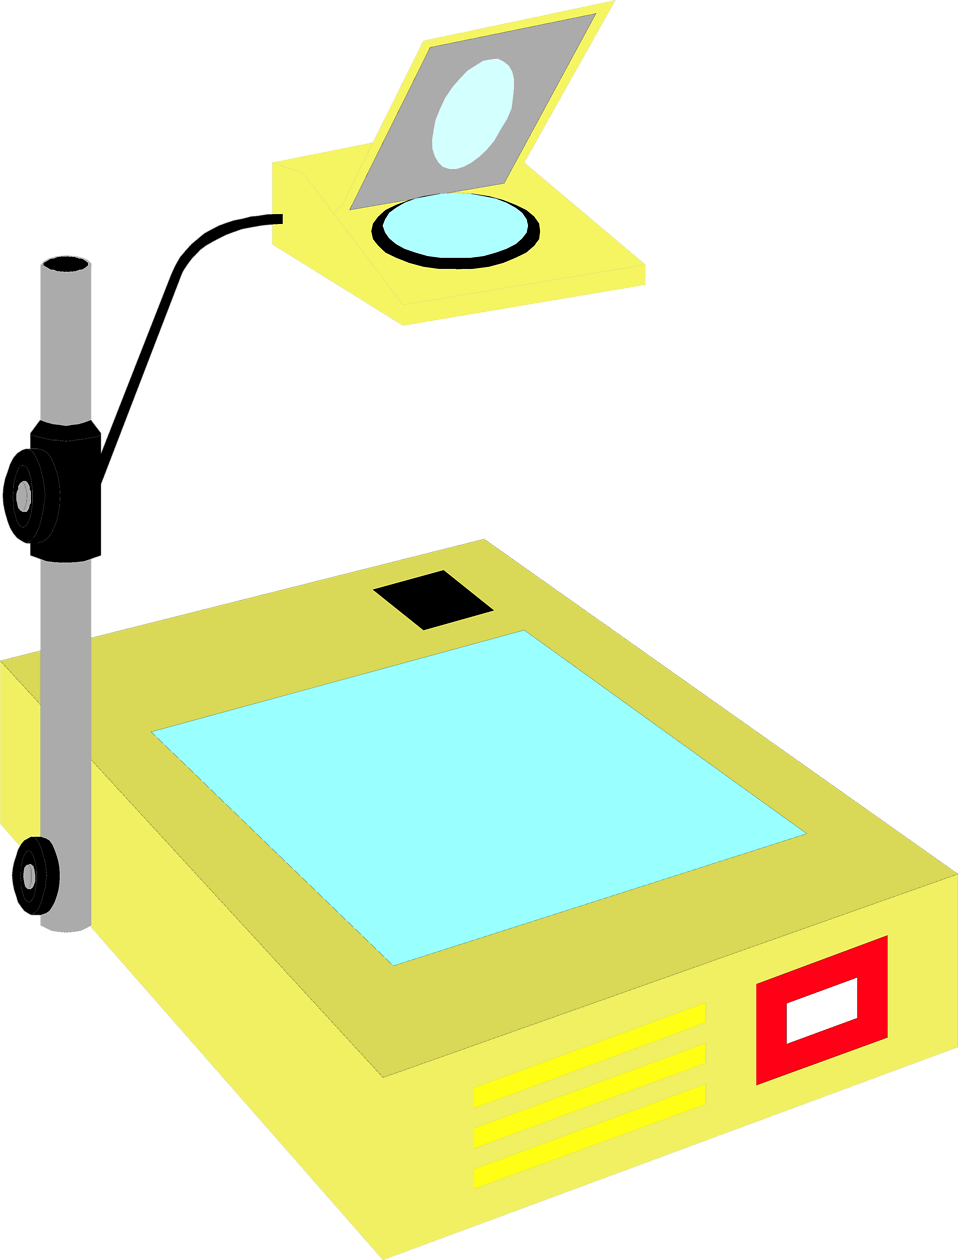 Illustration of an overhead projector : Free Stock Photo